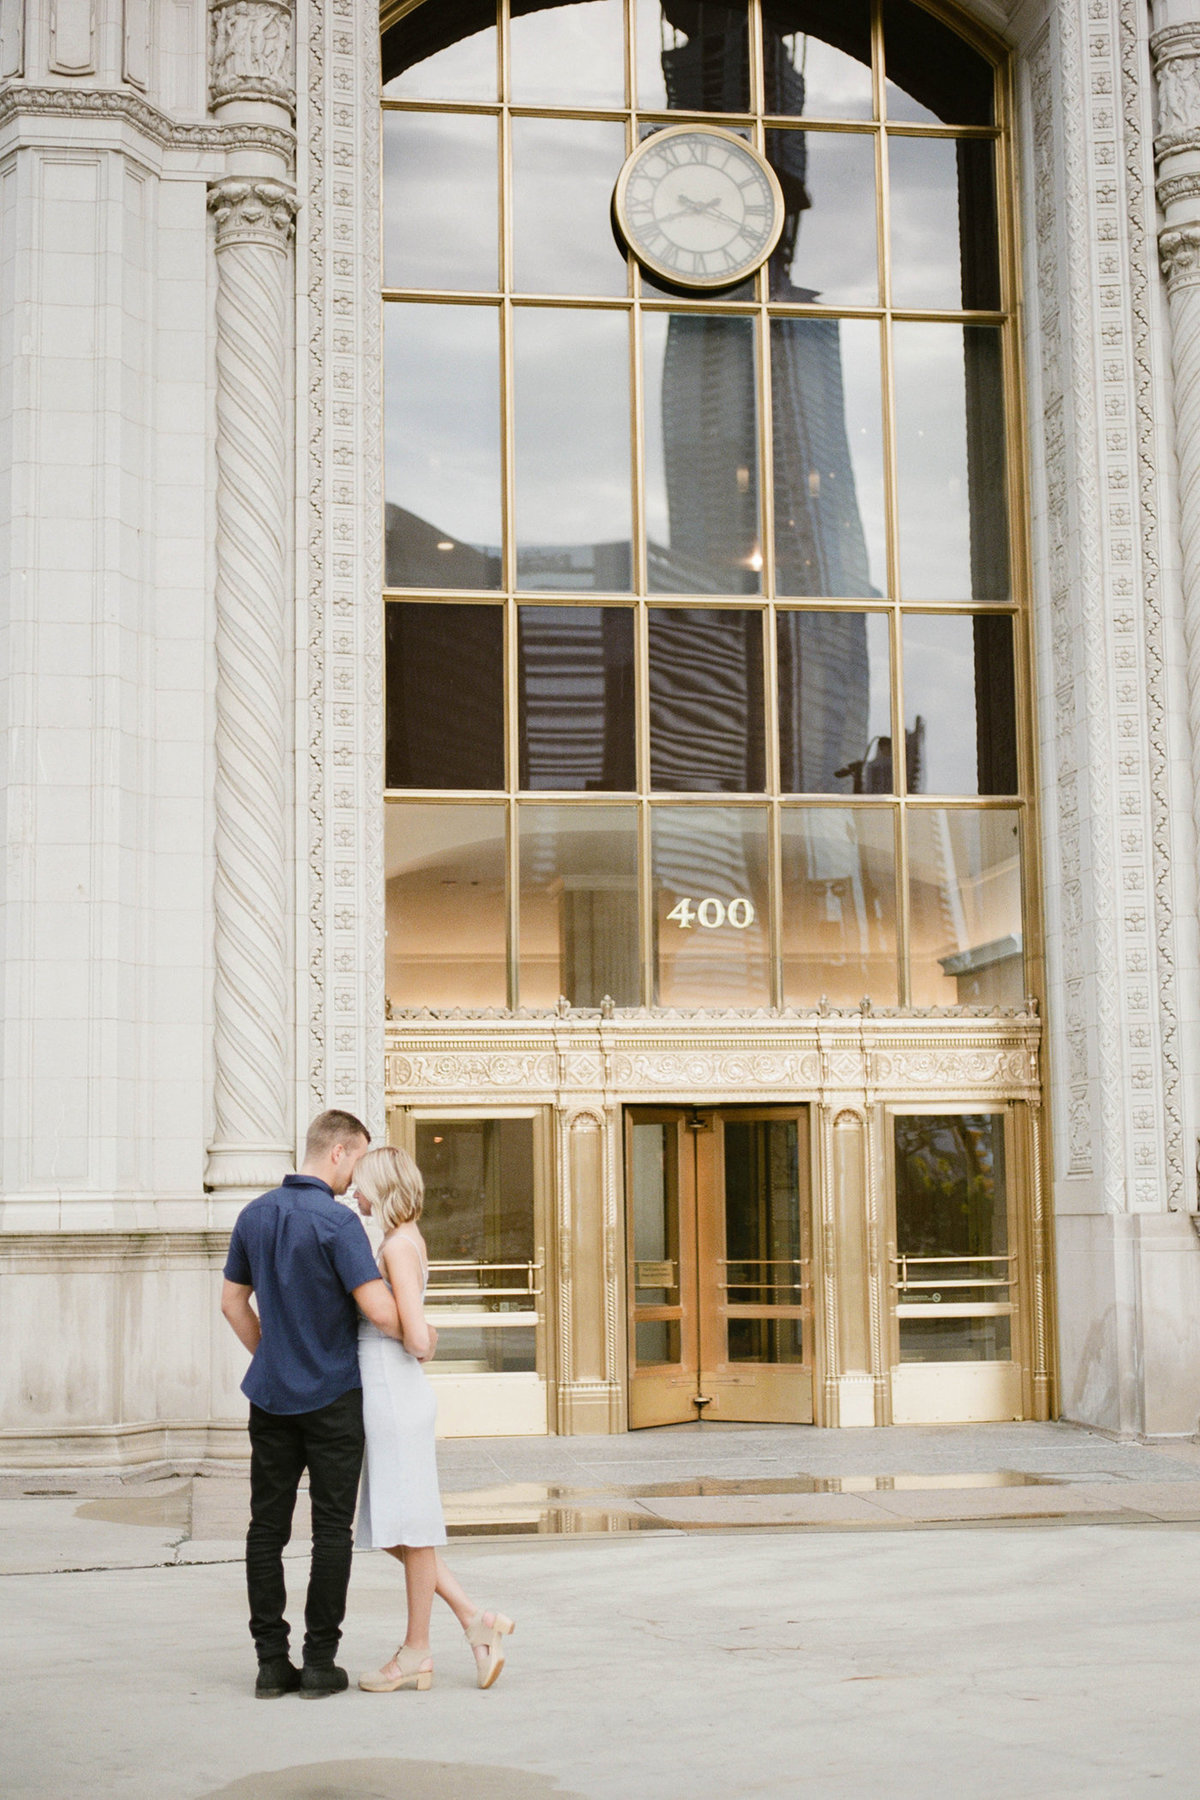 Chicago Wedding Photographer - Fine Art Film Photographer - Sarah Sunstrom - Sam + Morgan - Engagement Session - 25